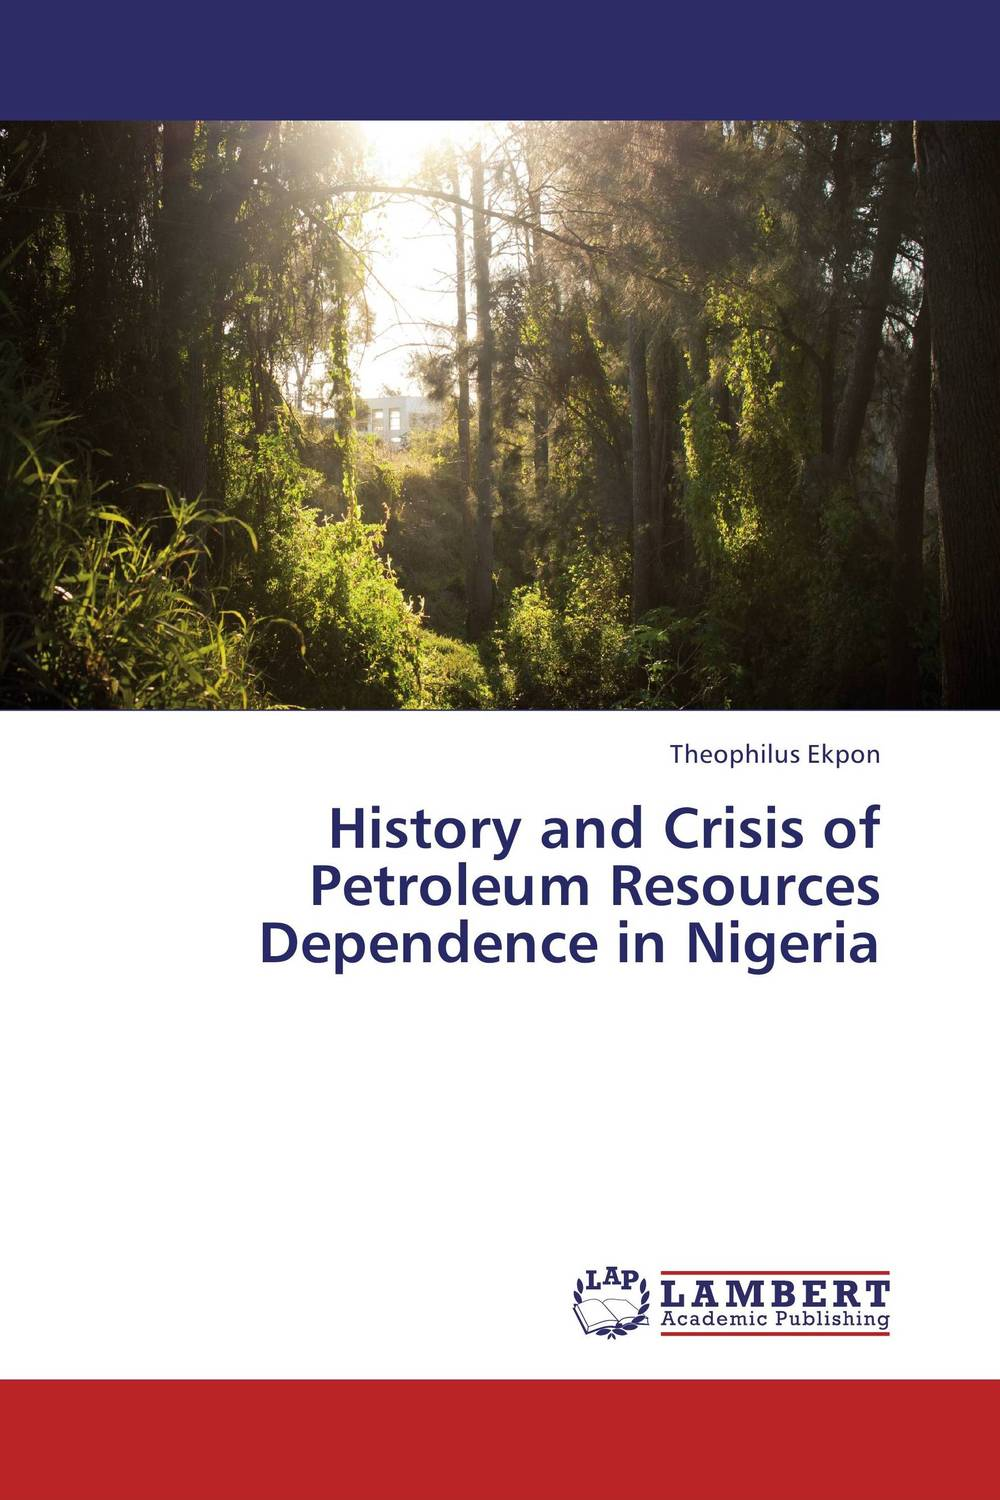 History and Crisis of Petroleum Resources Dependence in Nigeria global financial crisis and the nigerian petroleum sector